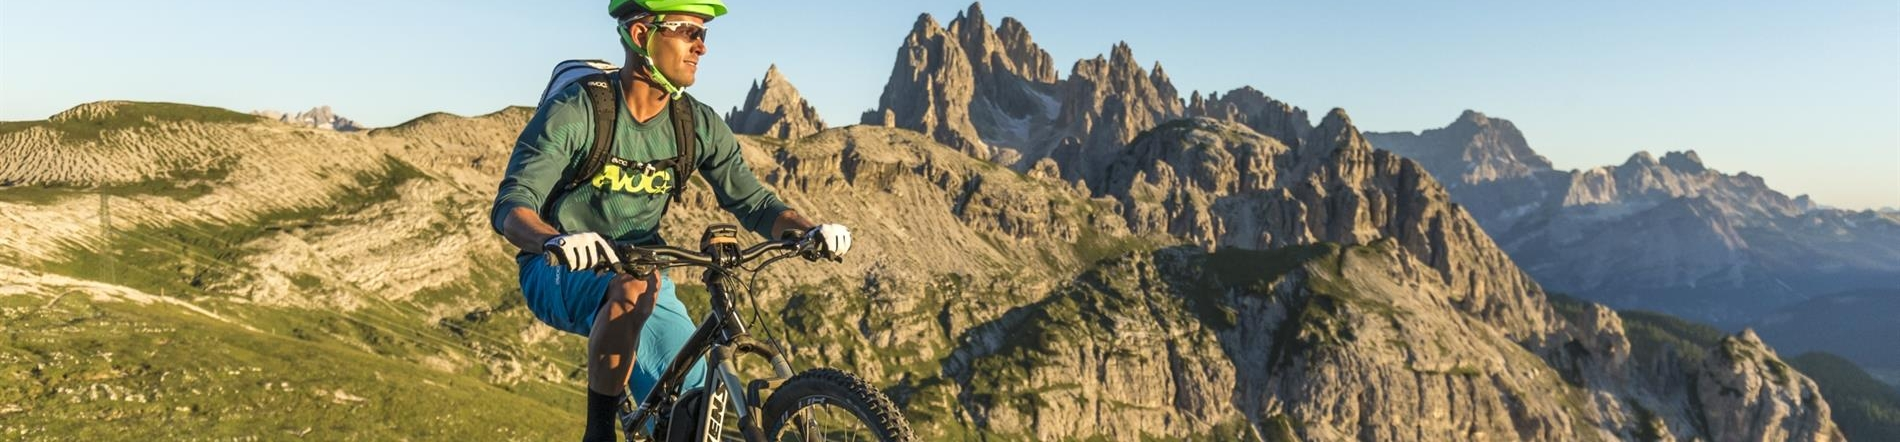 emtb-in-suedtirol